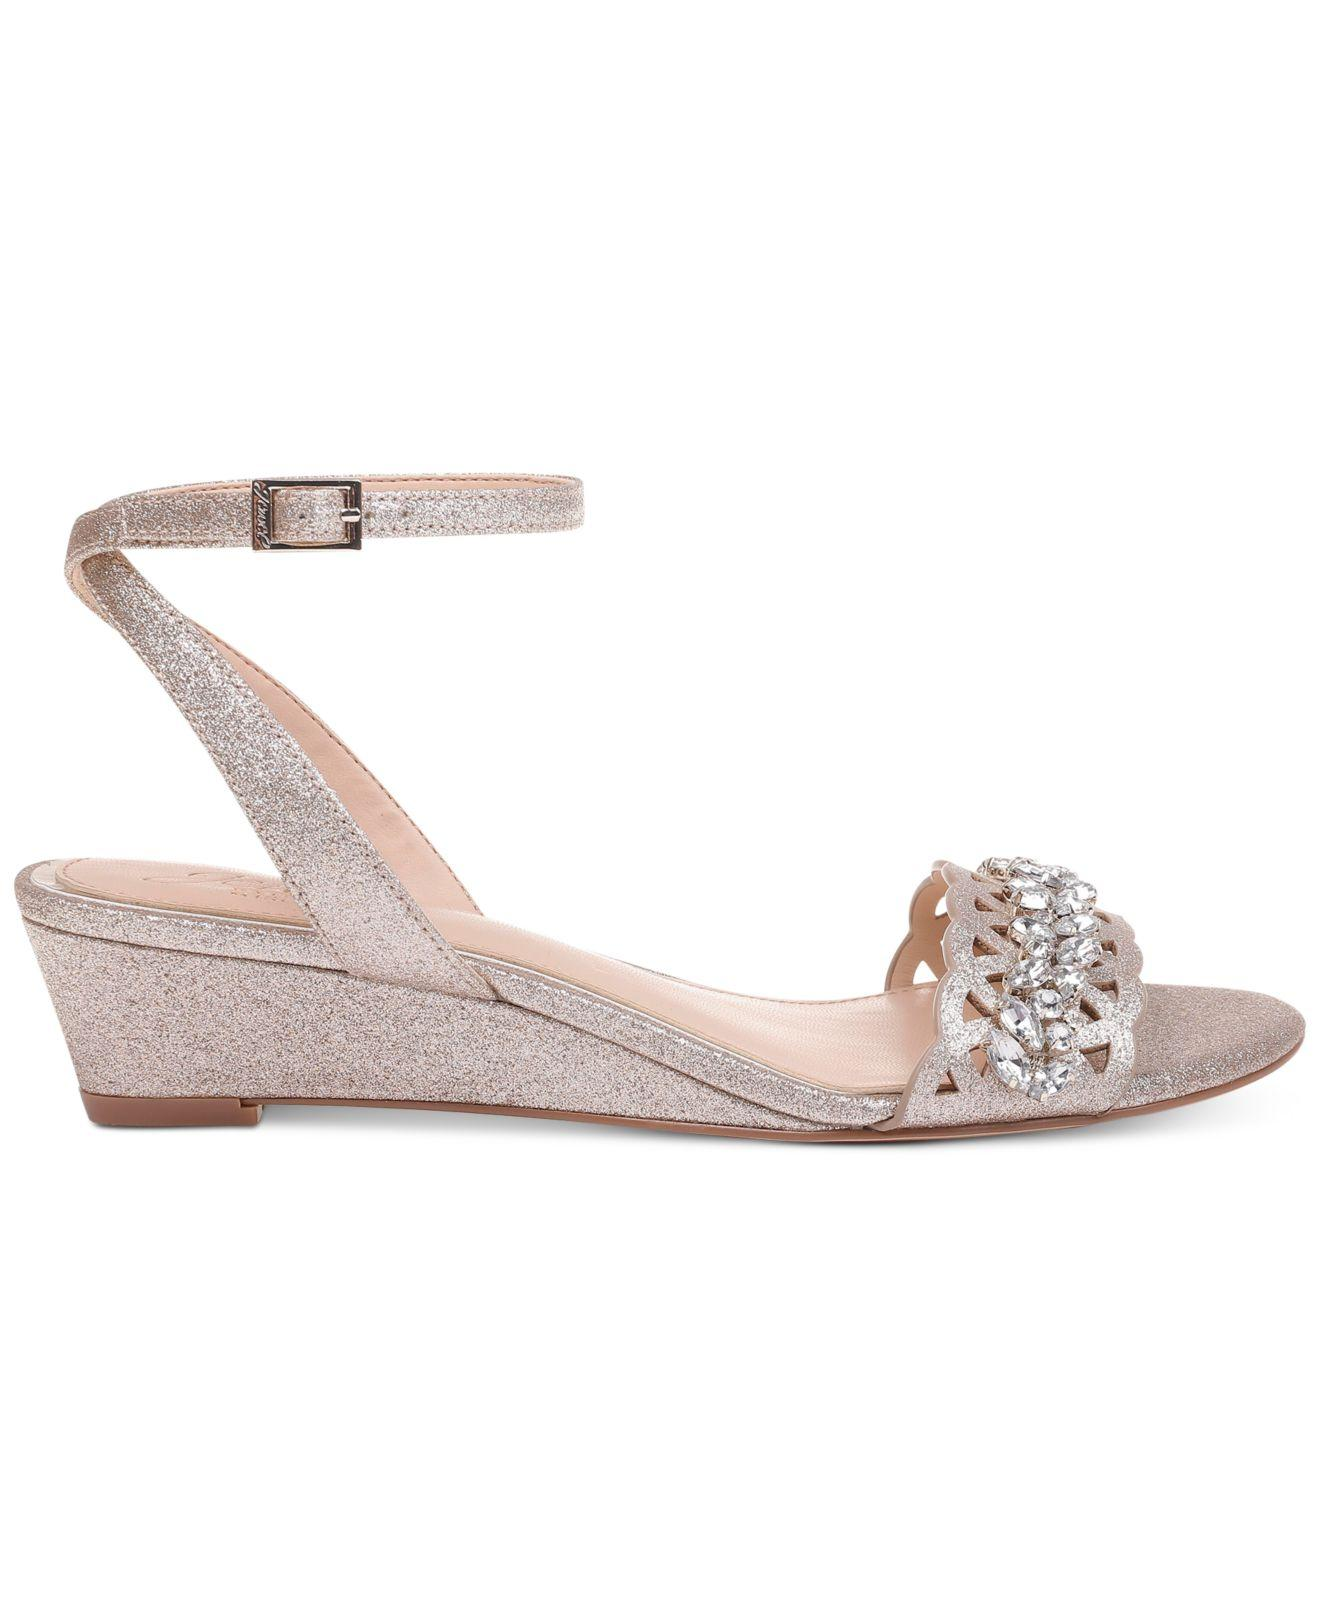 f0f0451496b2 Lyst - Badgley Mischka Jewel By Badgley Mischka Kindle Evening Wedges in  Metallic